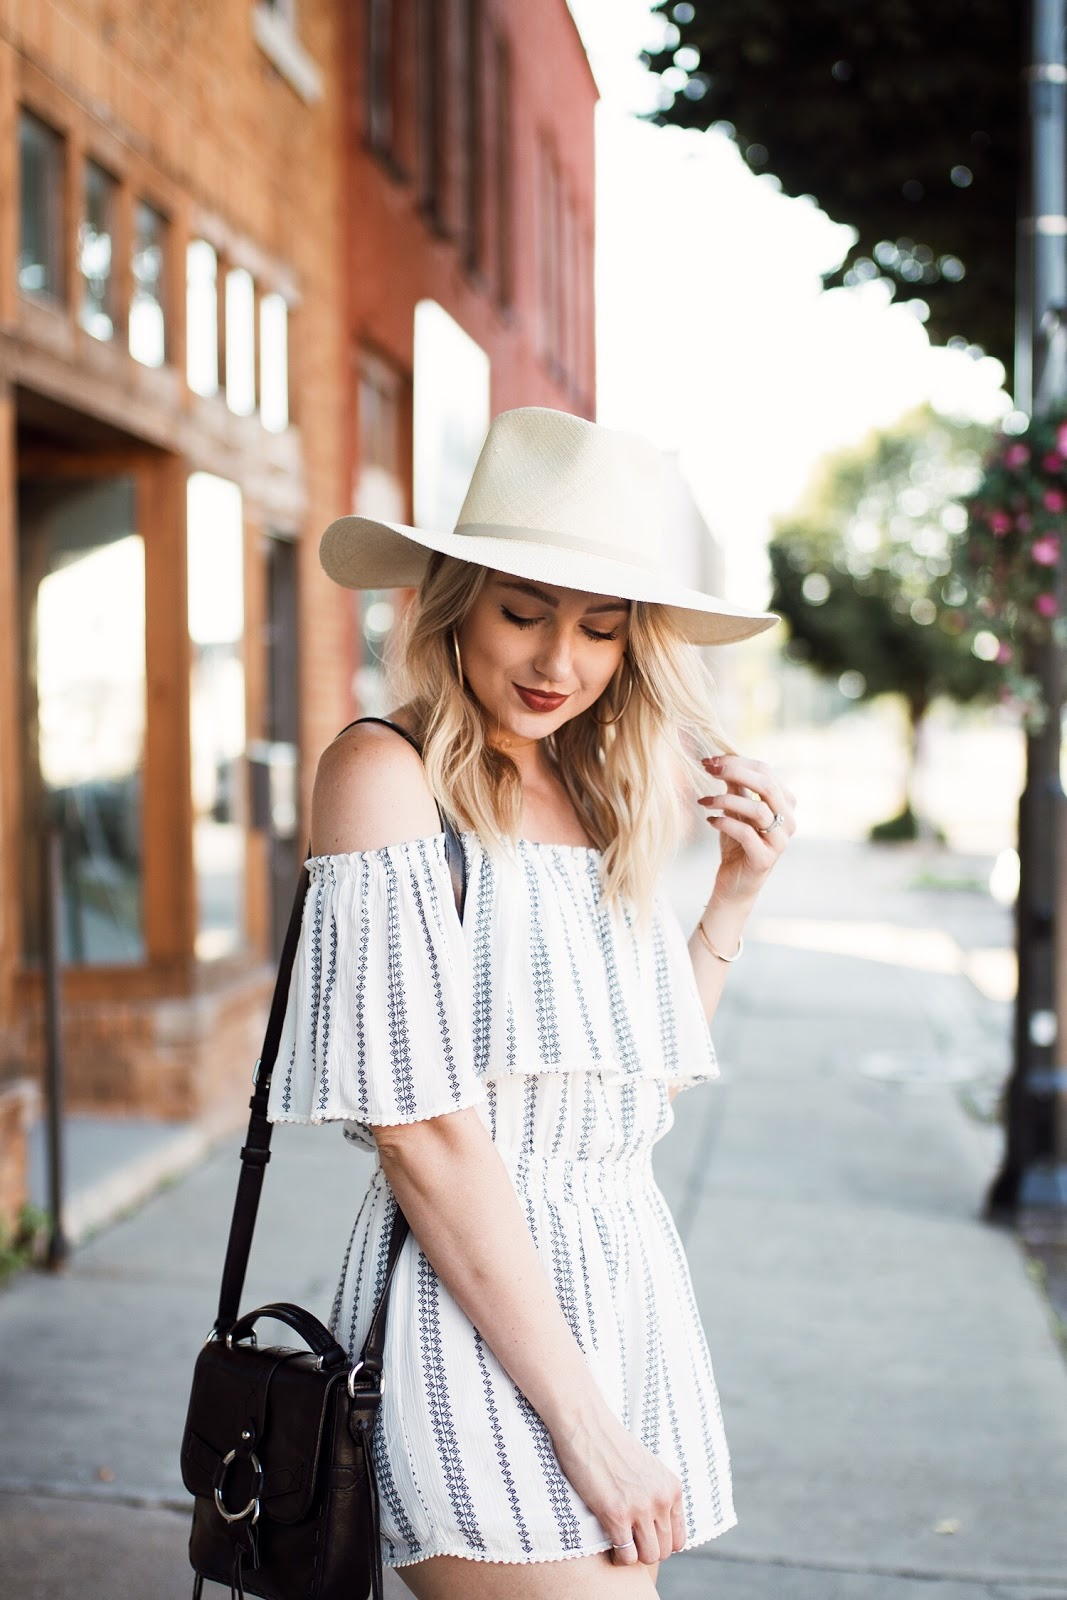 blue & white off-the-shoulder romper + a wide brim straw hat // 4th of July outfit idea